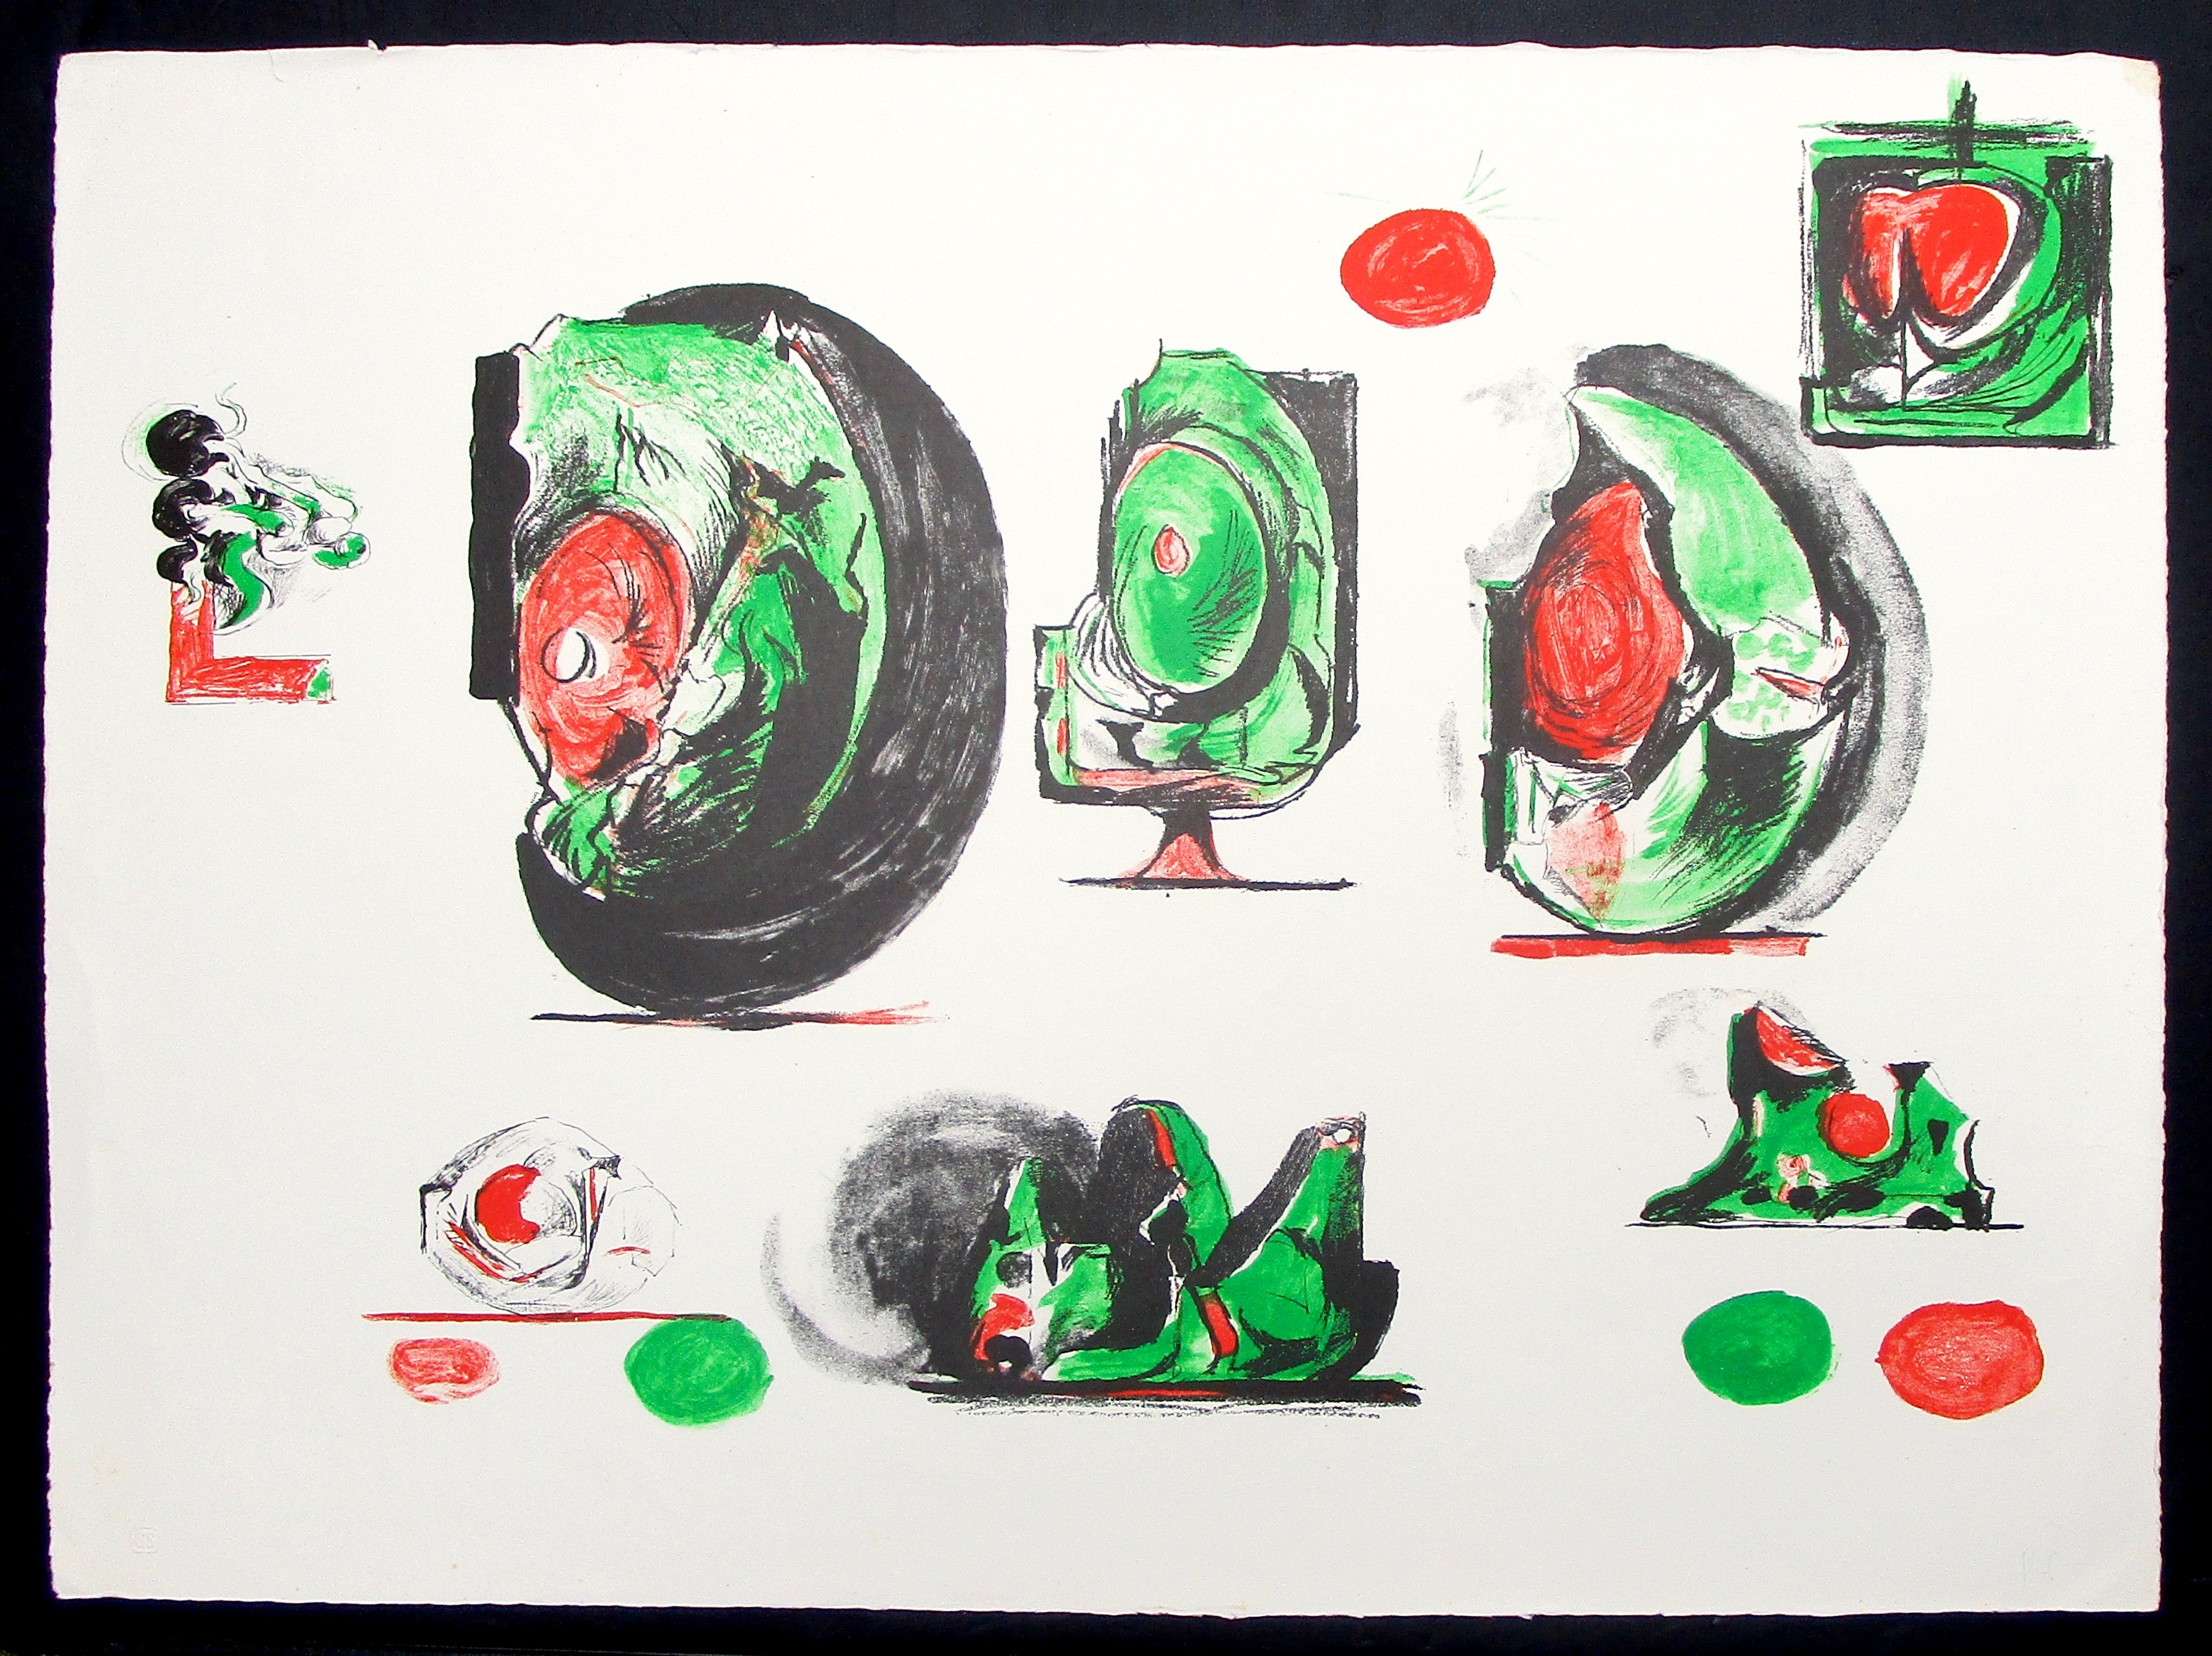 GRAHAM SUTHERLAND OM [1903-80]. Sheet of Studies, 1971. Lithograph on wove pape.,Ssigned with